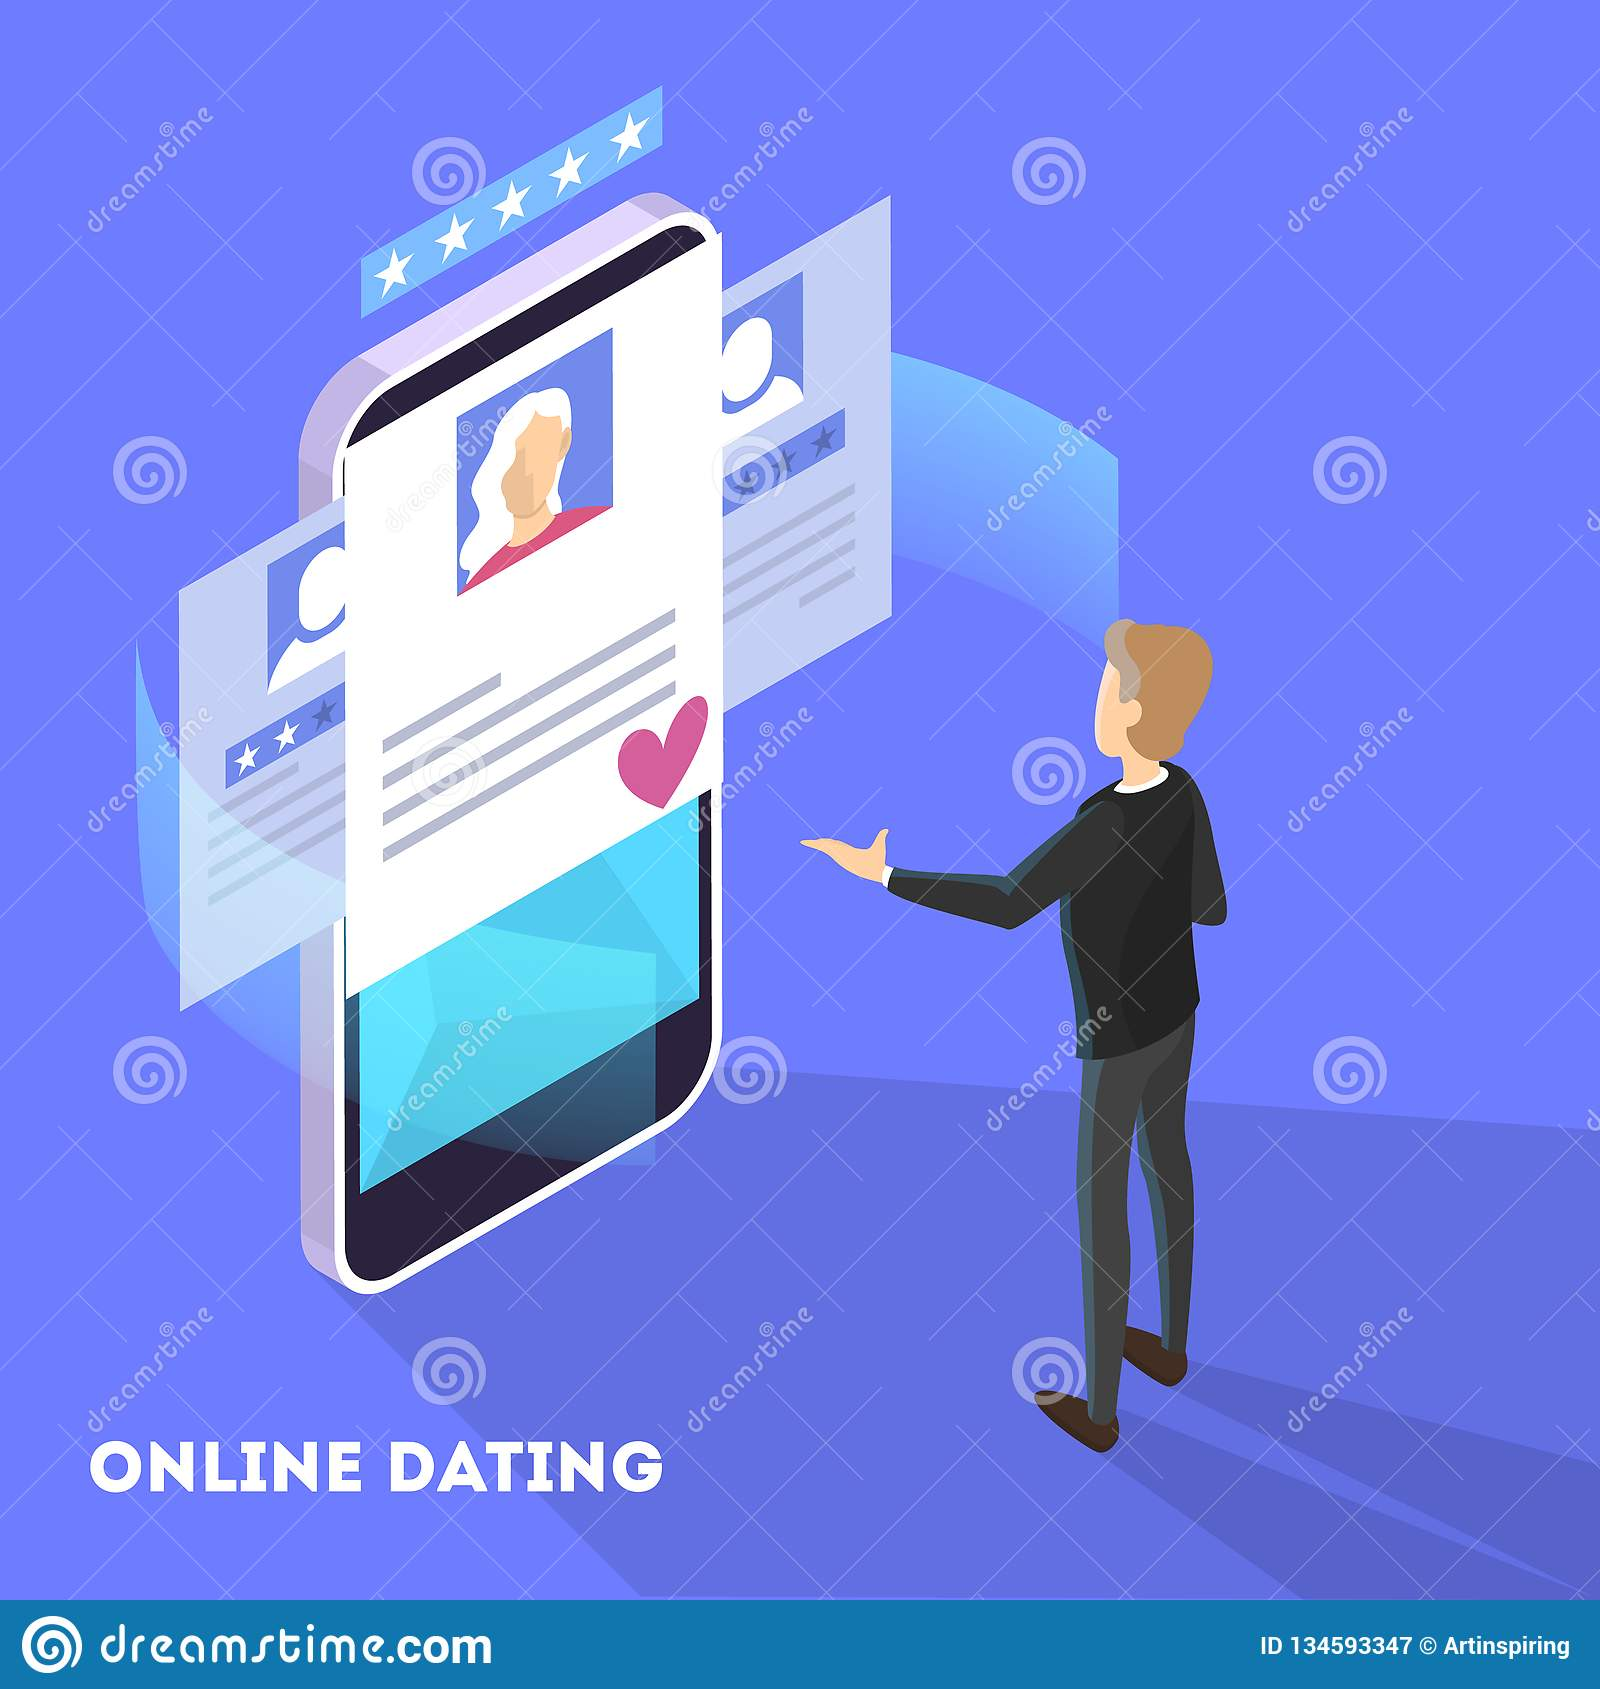 opinion you 100 free online dating site in usa for friendship apologise, but